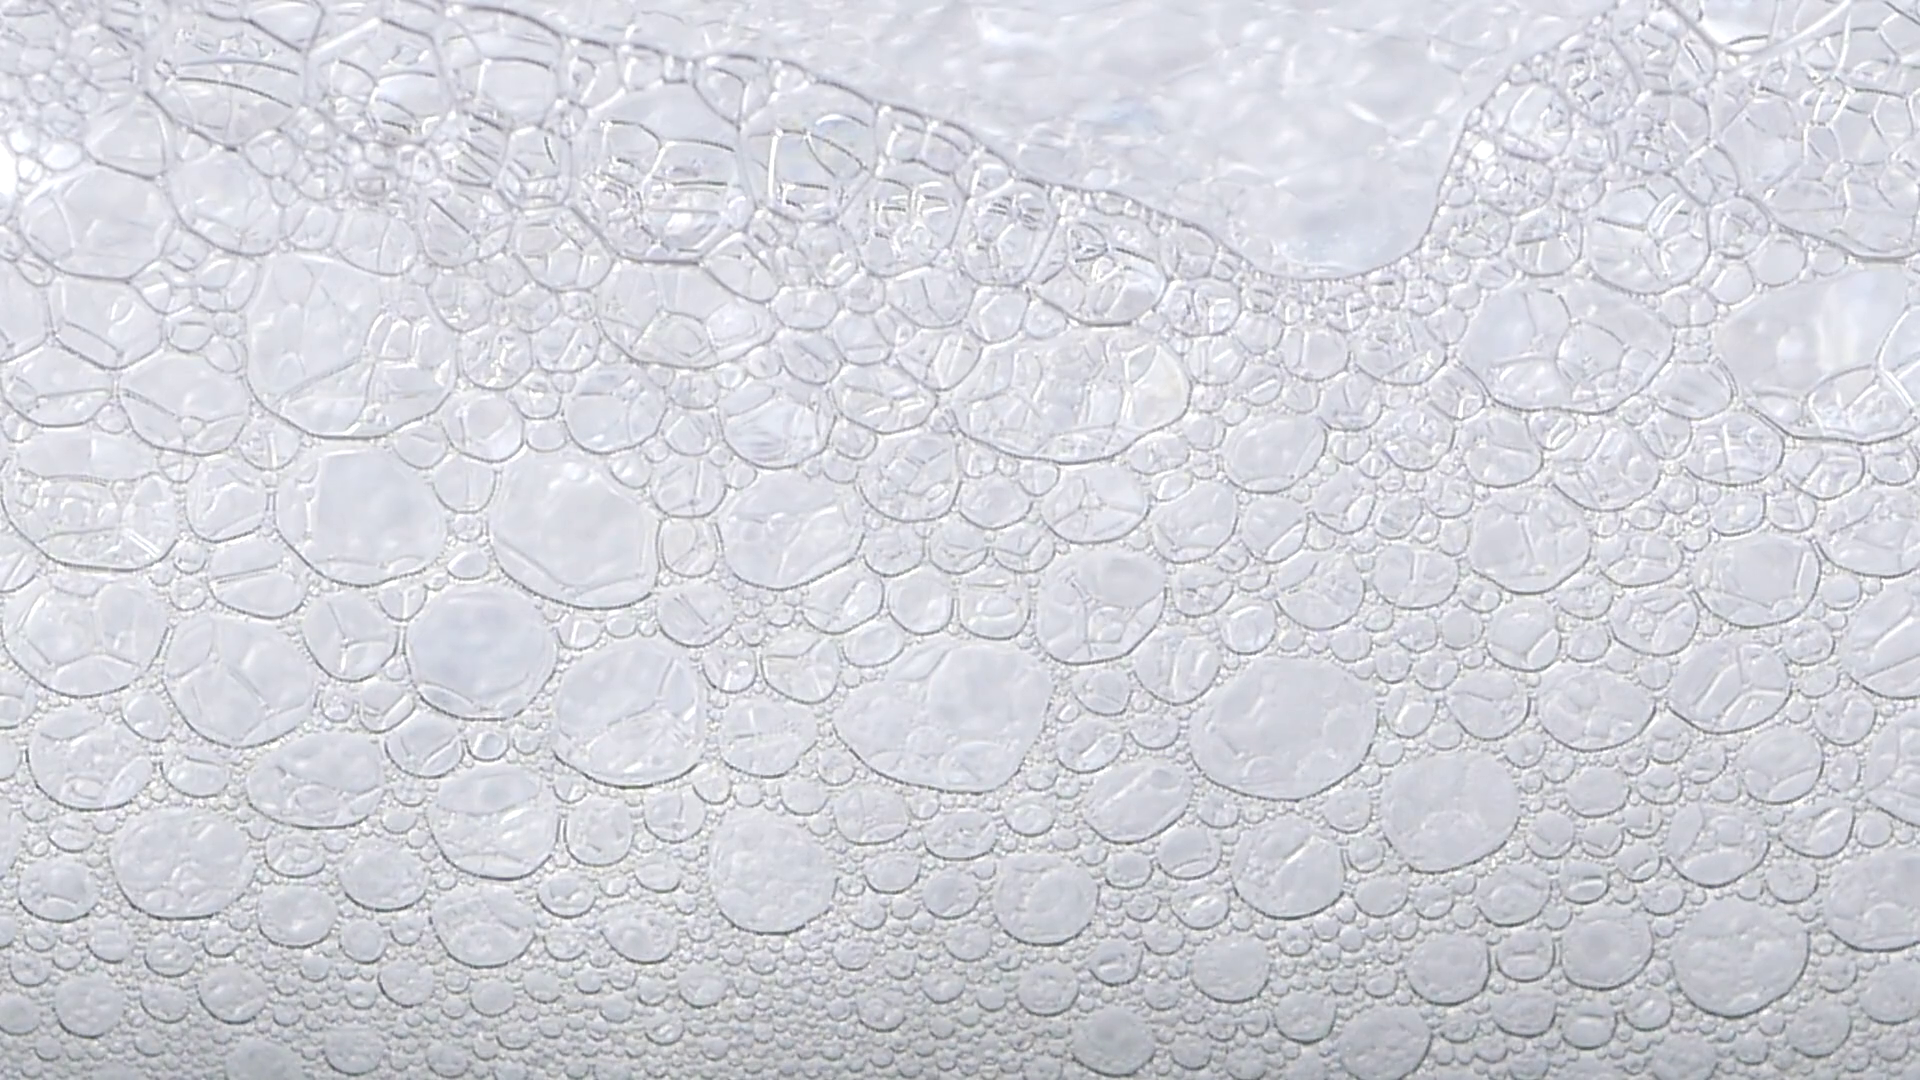 foam blue texture soap bubbles on the water Stock Video Footage.